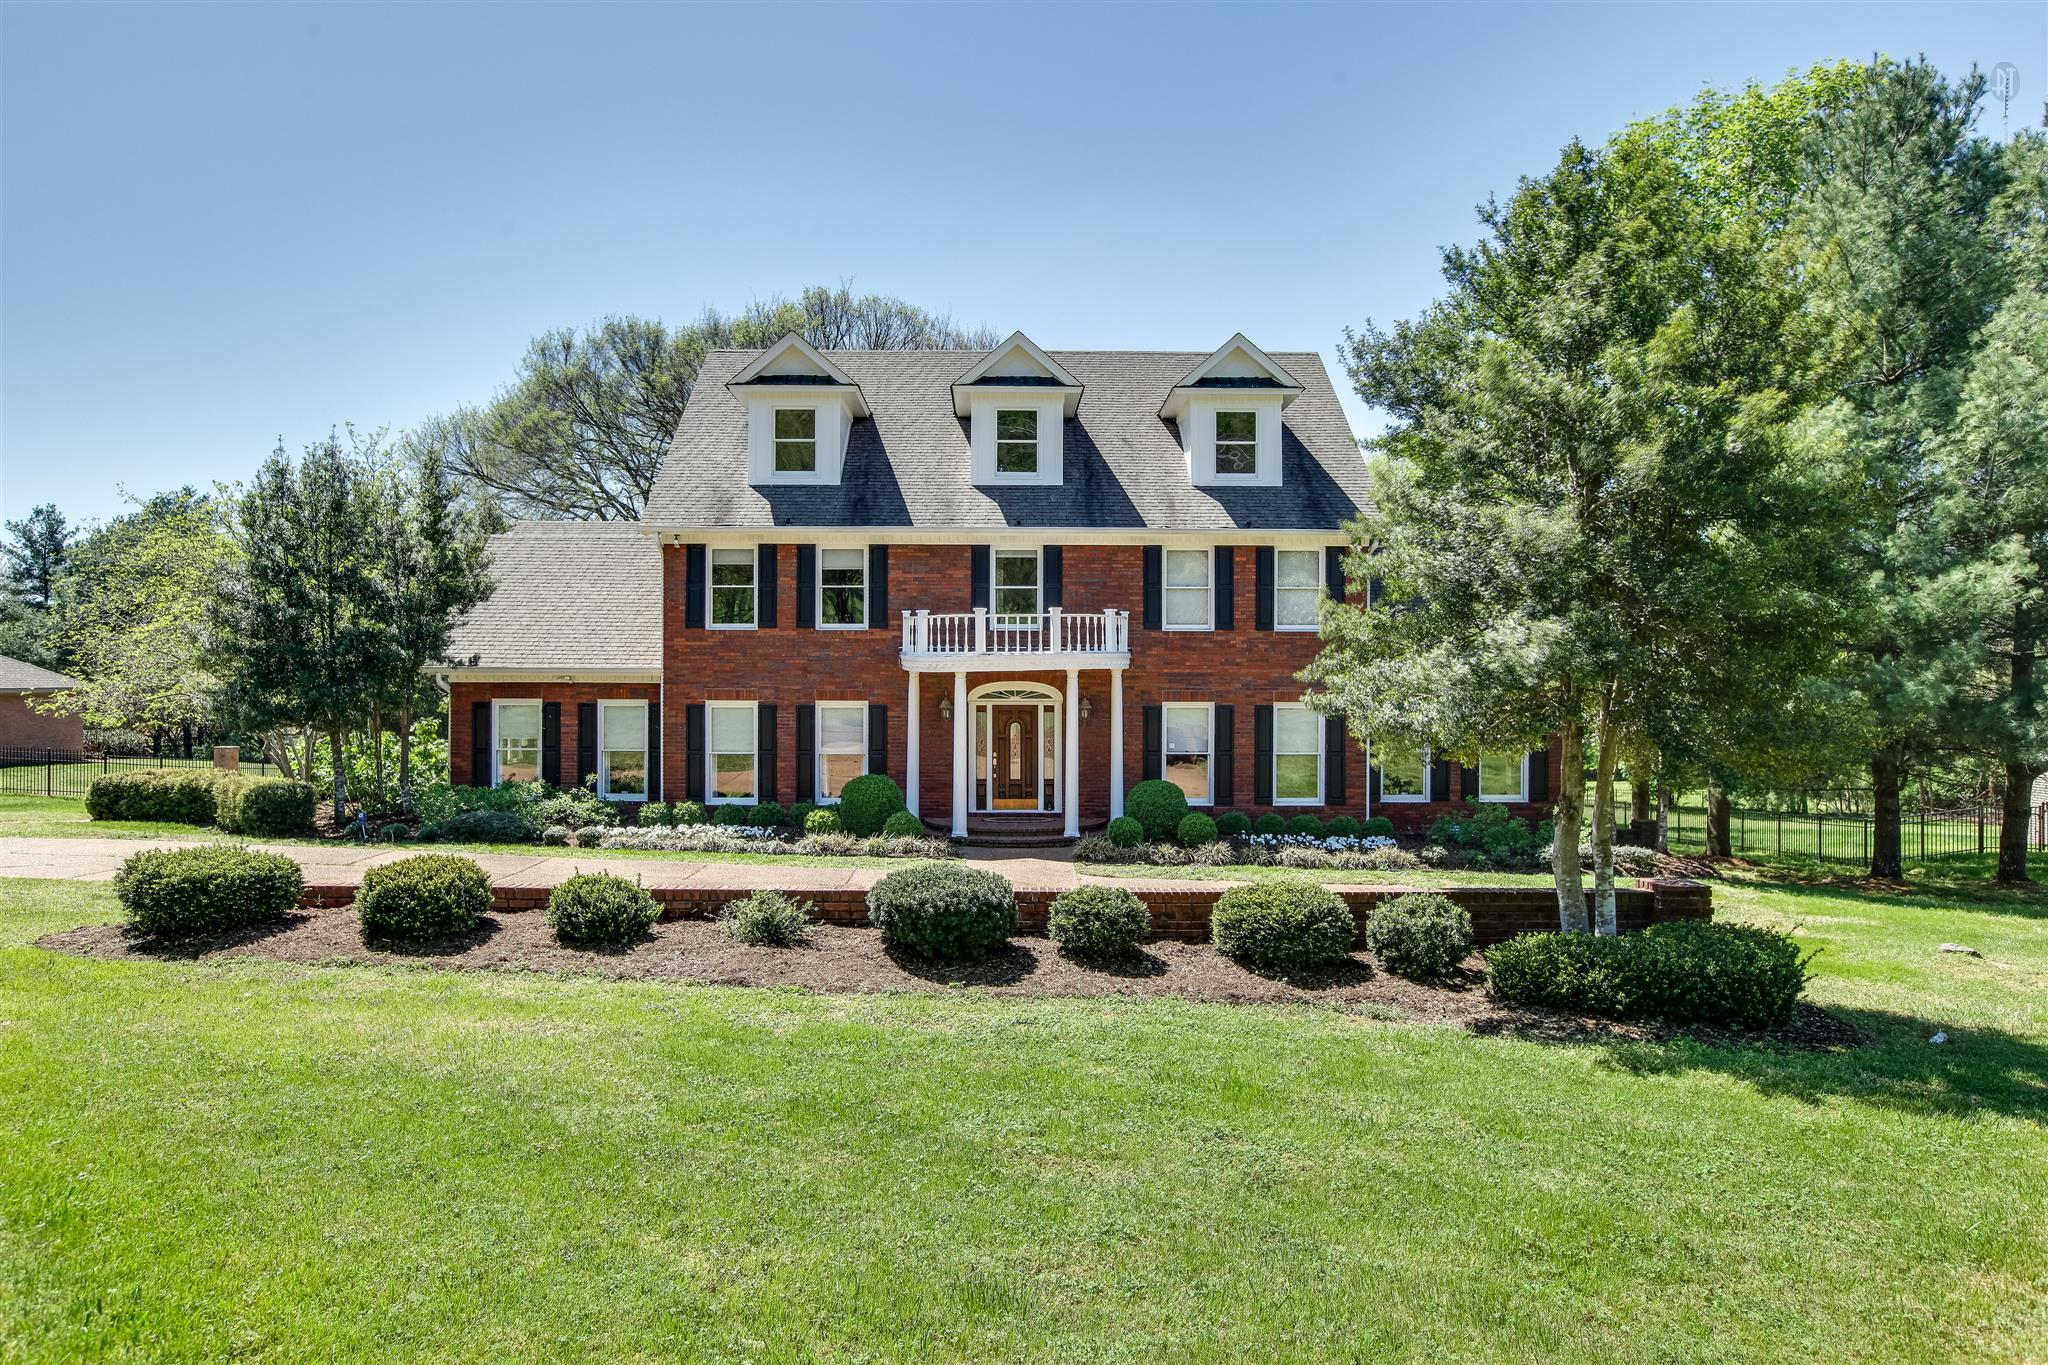 1621 Old Hickory Blvd, Brentwood, TN